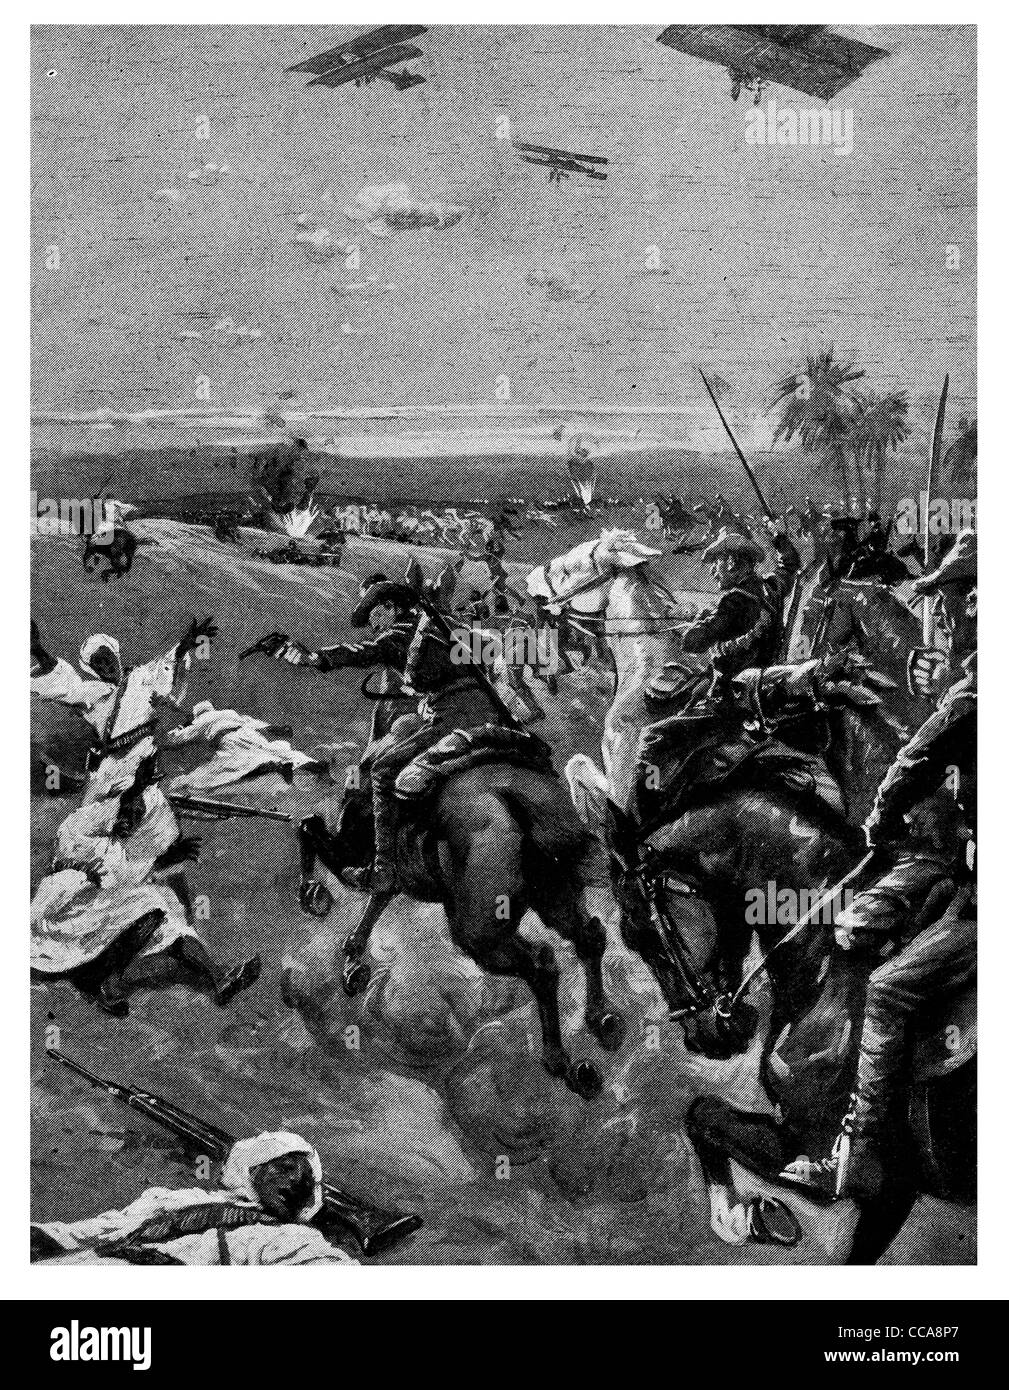 1916 Anzac New Zealand mounted troops Swords bombs scatter enemy Egypt British airman lance saber sword Desert Egyptian - Stock Image